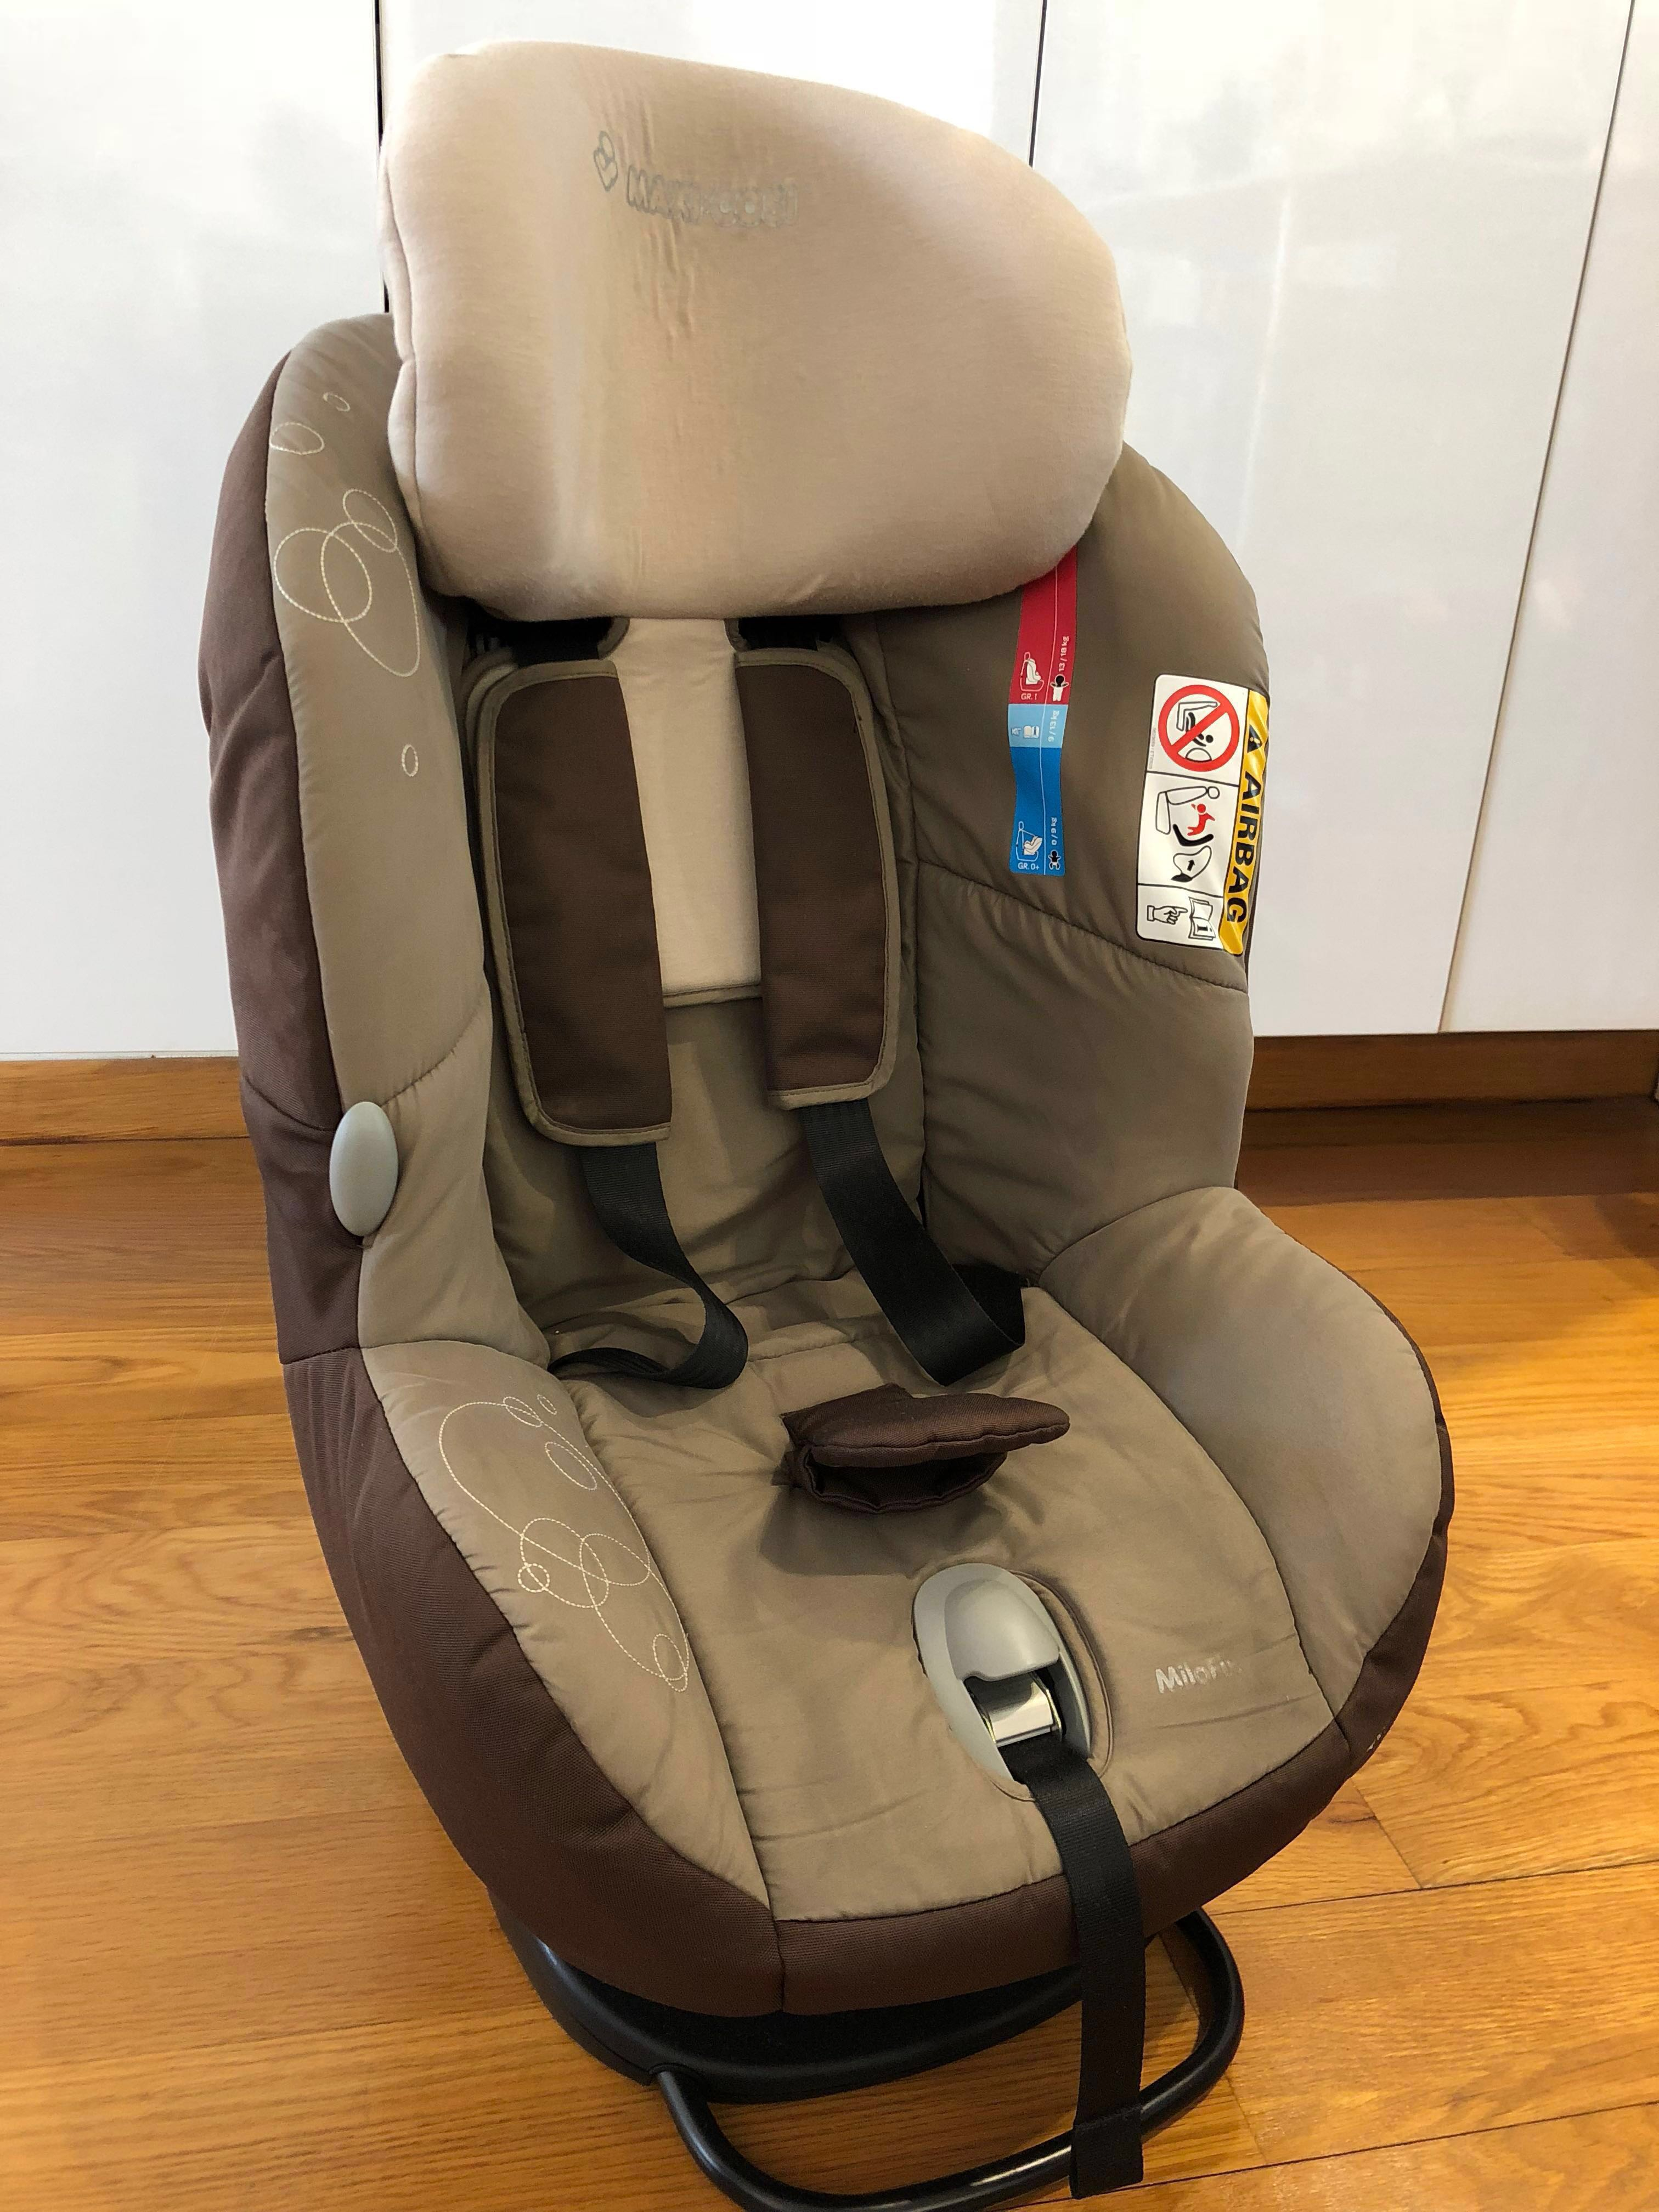 Must-sell ! Maxi Cosi Car Seat - for birth